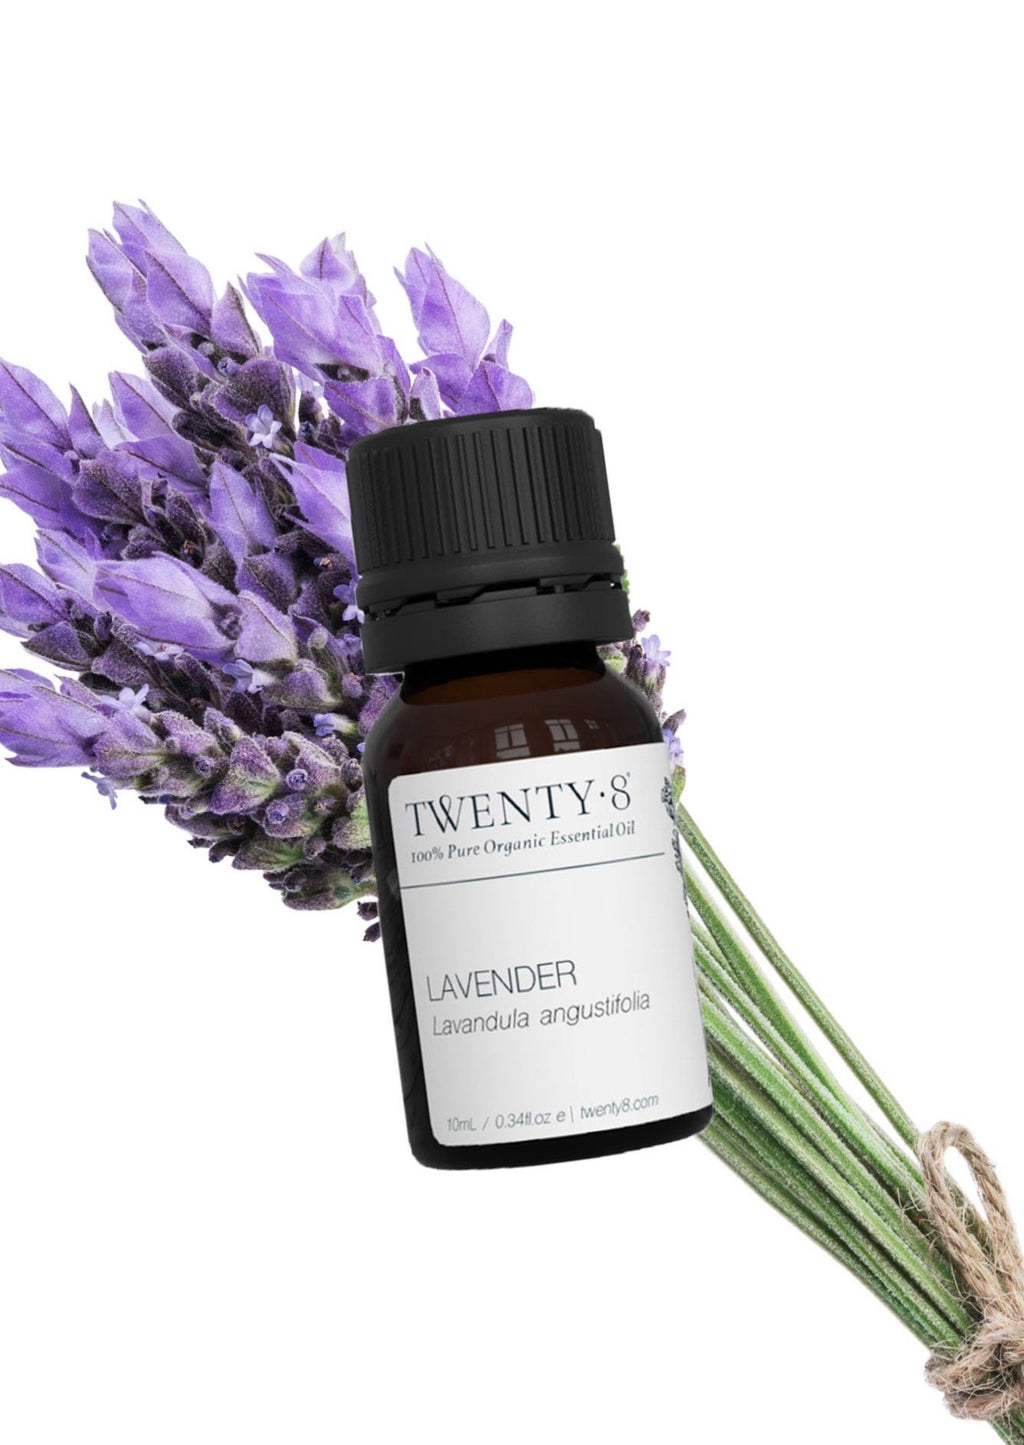 Lavender - 100% Pure, Organic Essential Oil, 10ml  Your first aid kit and dream mum in a bottle! A must-have oil in every home to help nurture, heal, calm, soothe and restore. It is the safest to use directly on small abrasions, bites and stings and is the perfect sleep aid with one drop on your pillow.  No home should be without the healing, nurturing and calming qualities of Lavender.